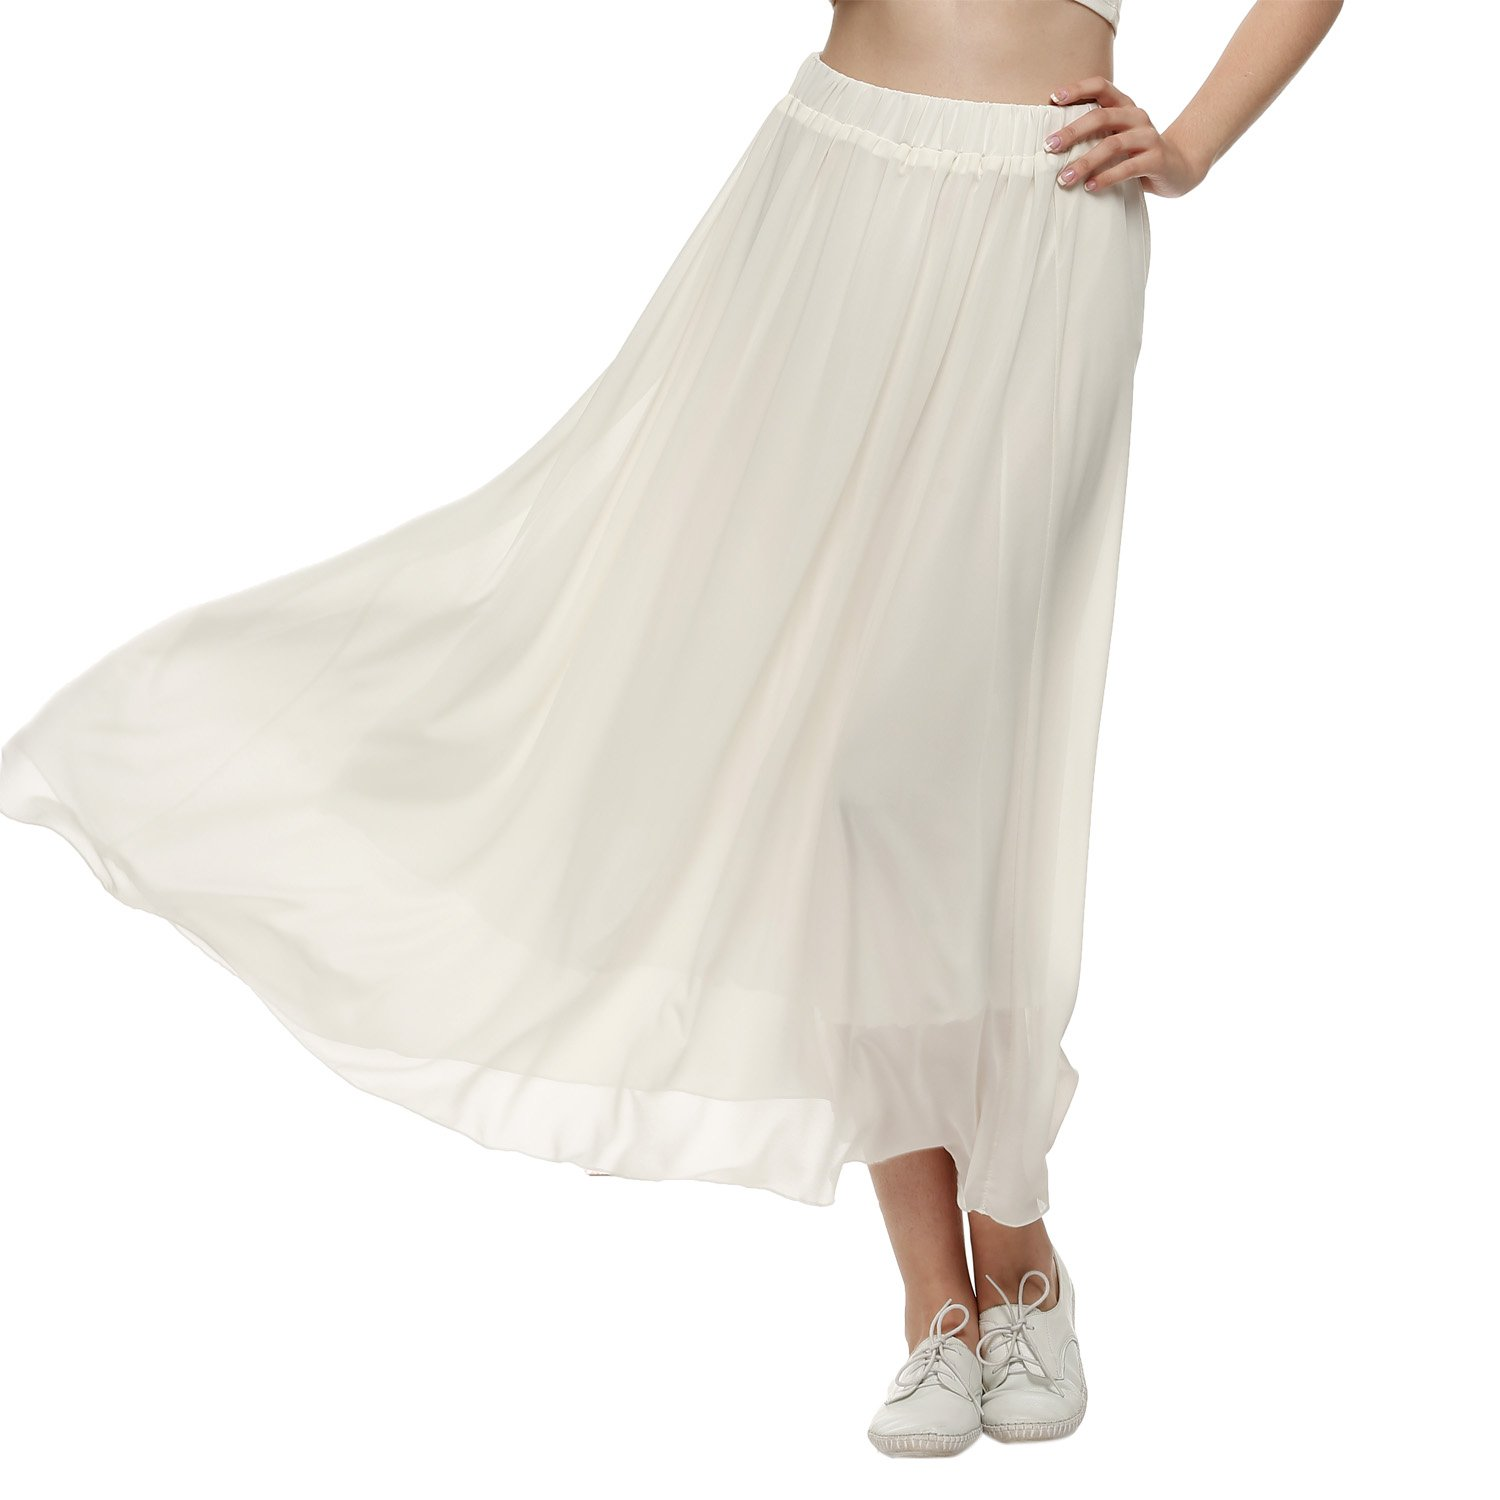 ACEVOG Women Double Layer Chiffon Pleated Long Maxi Elastic Waist Skirt White XXL